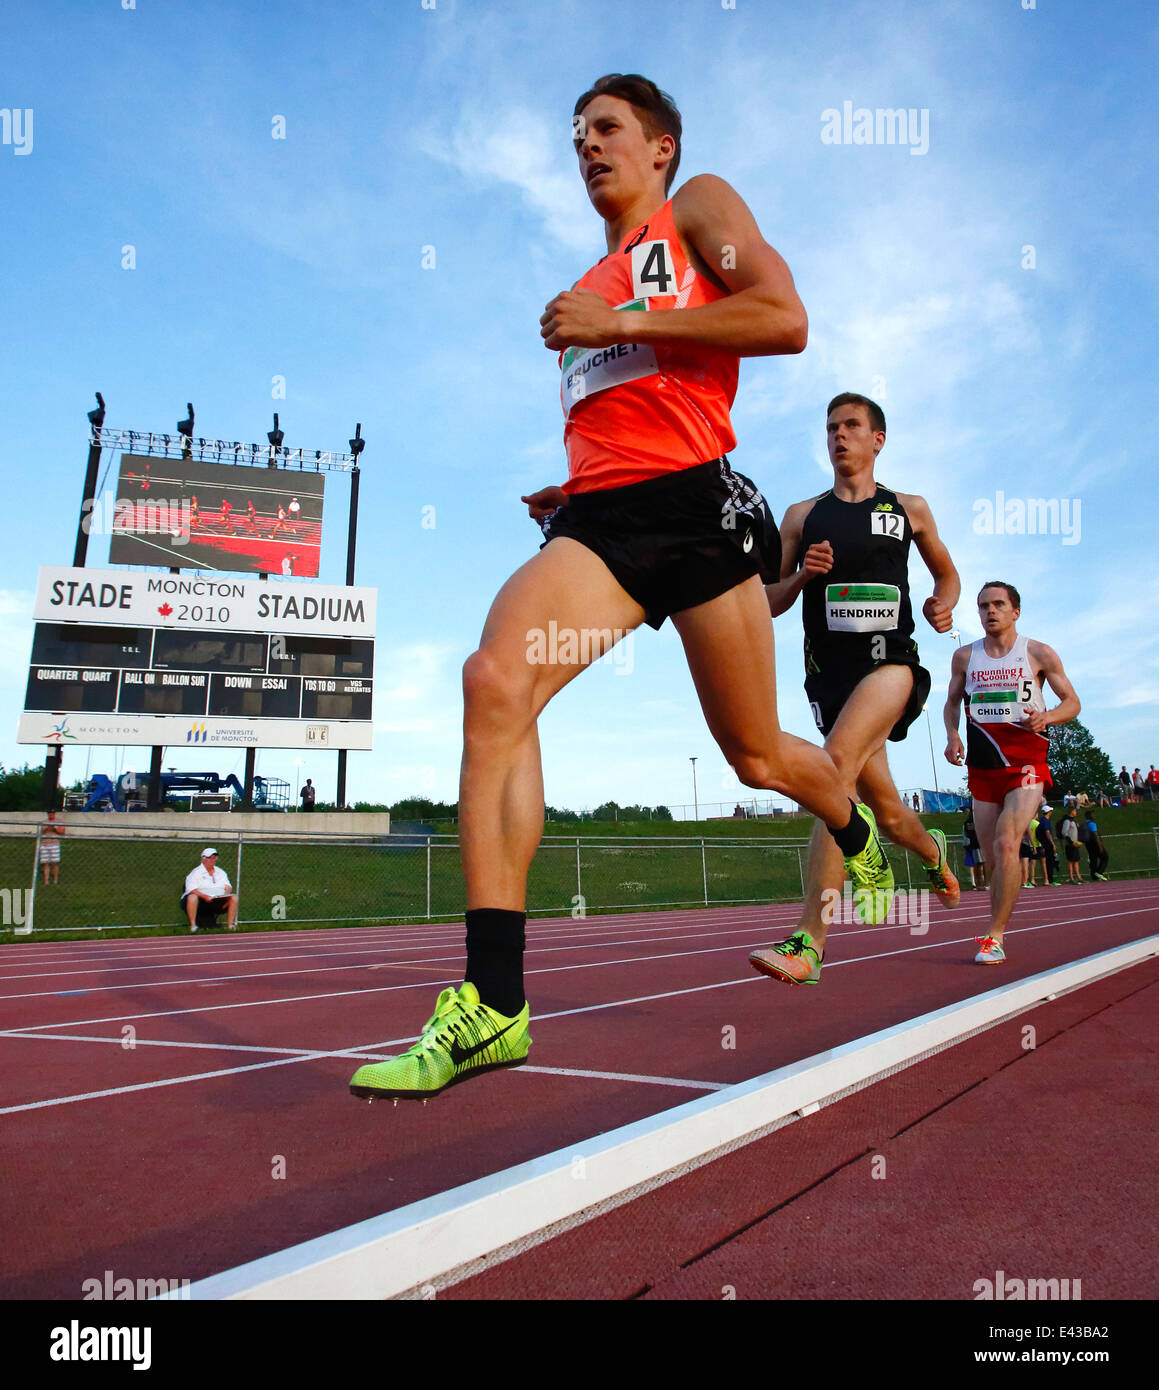 Runners in the men's 5000-metre championship at the Canadian Track & Field Championships June 28, 2014 in - Stock Image